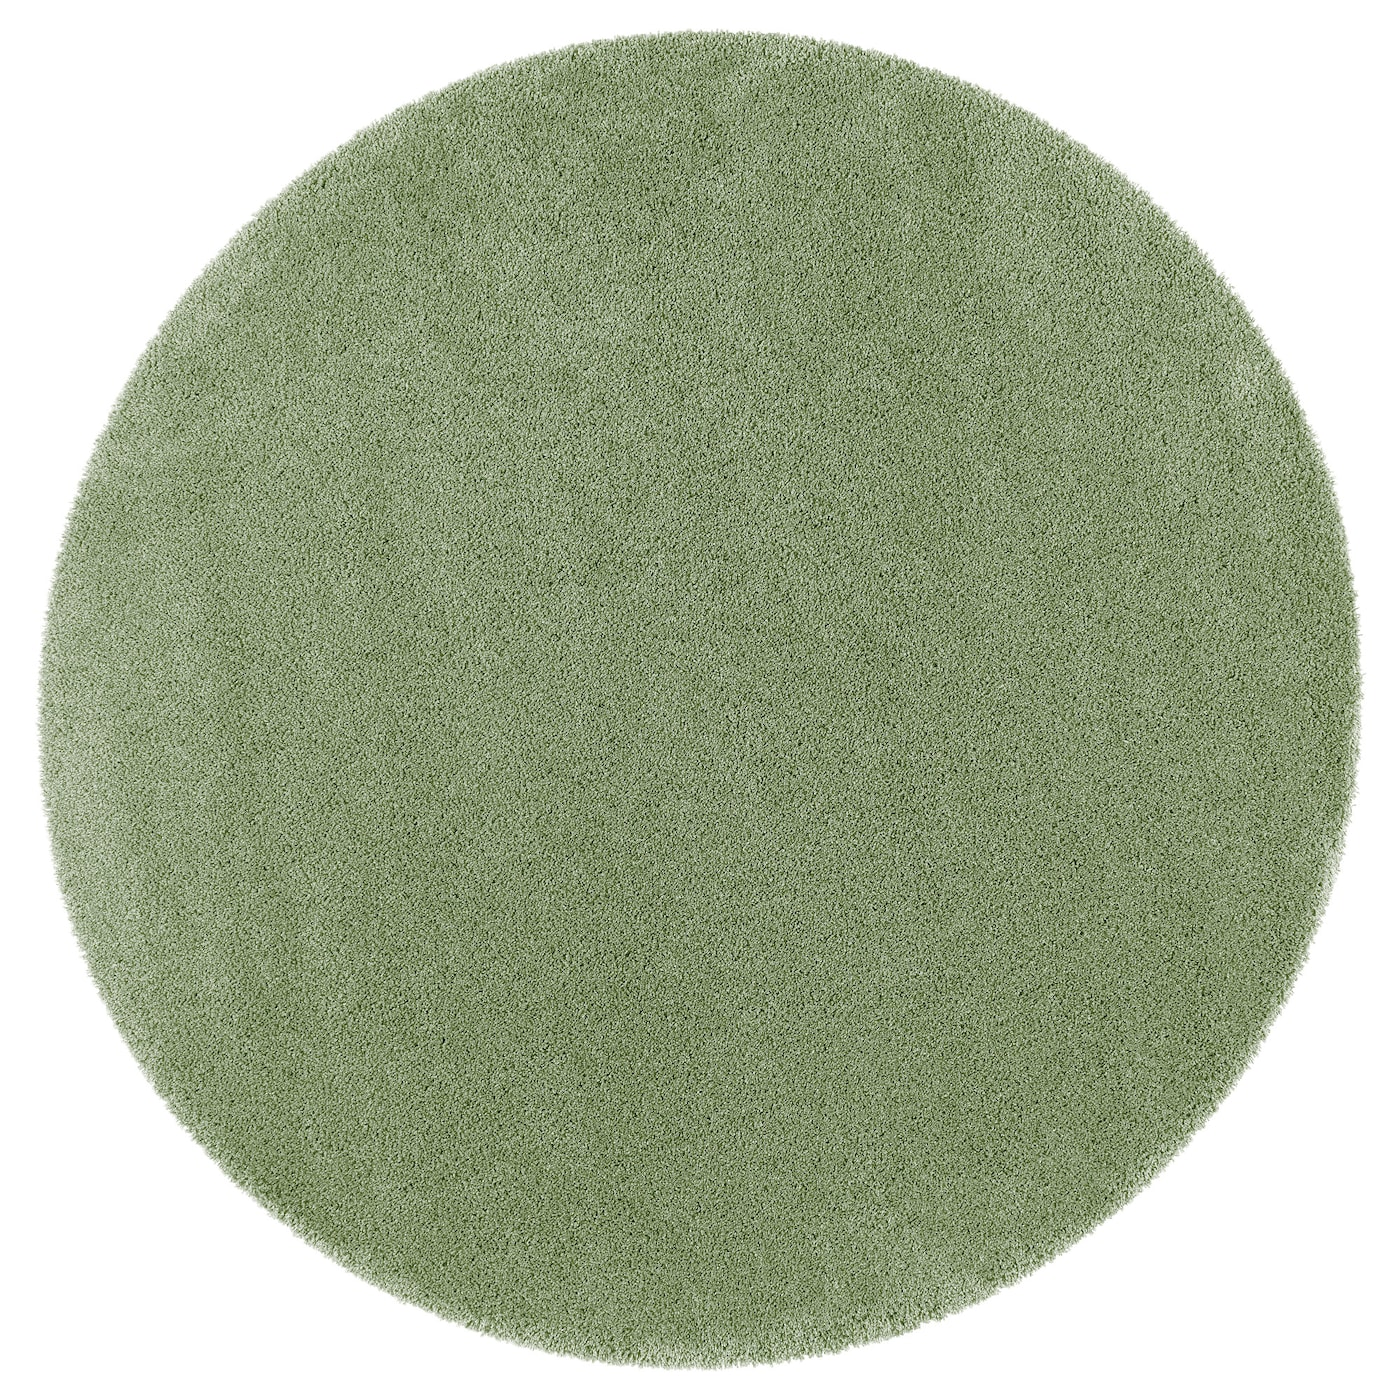 dum rug high pile light green 195 cm ikea. Black Bedroom Furniture Sets. Home Design Ideas